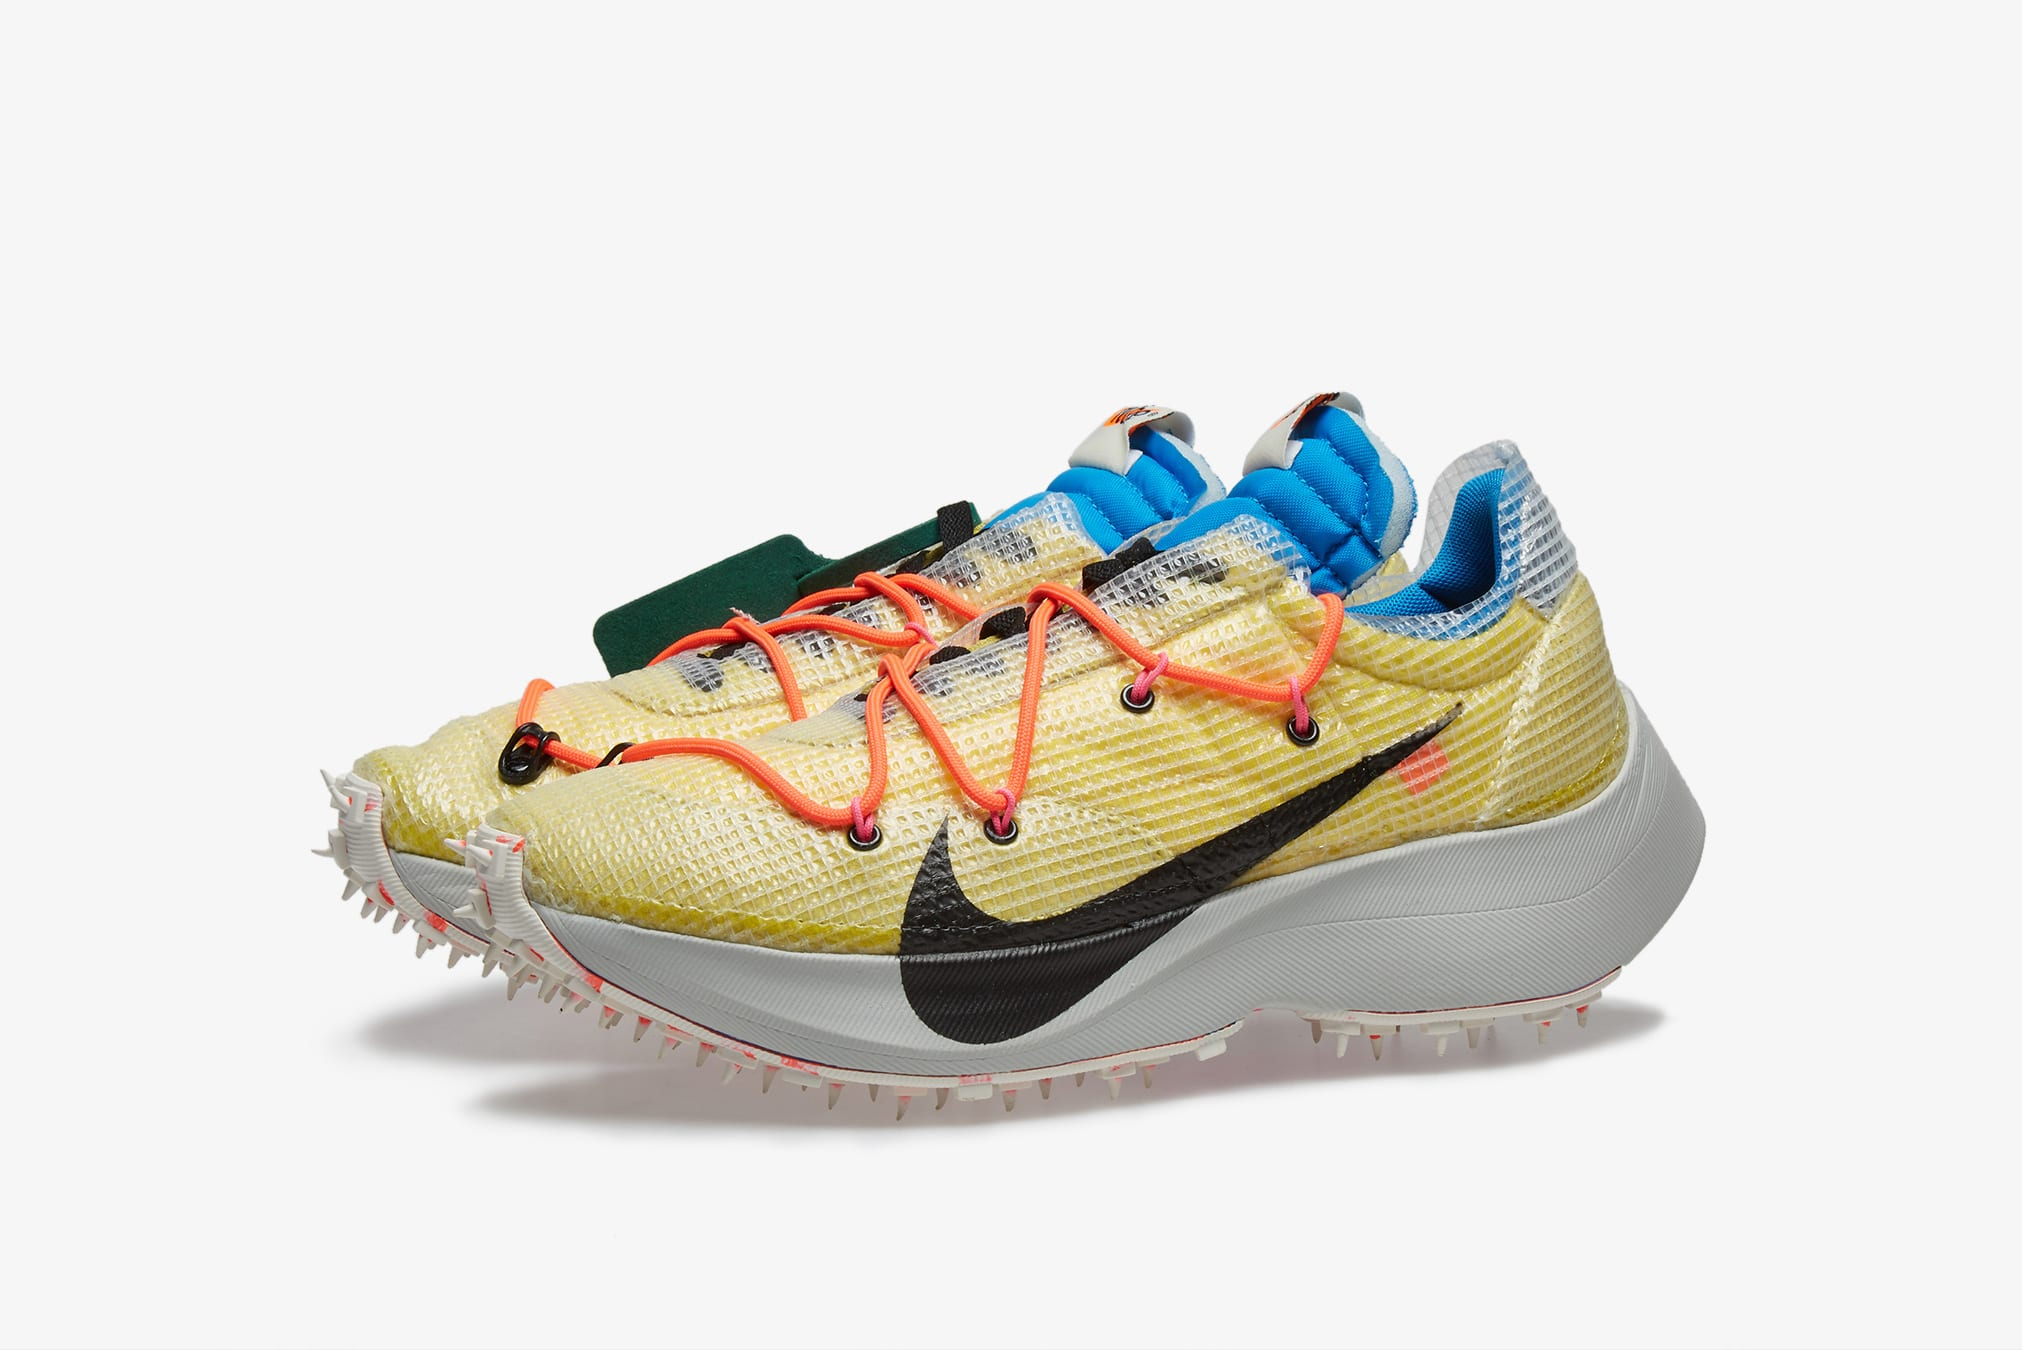 Nike x Off-White Vapor Street - CD8178-700